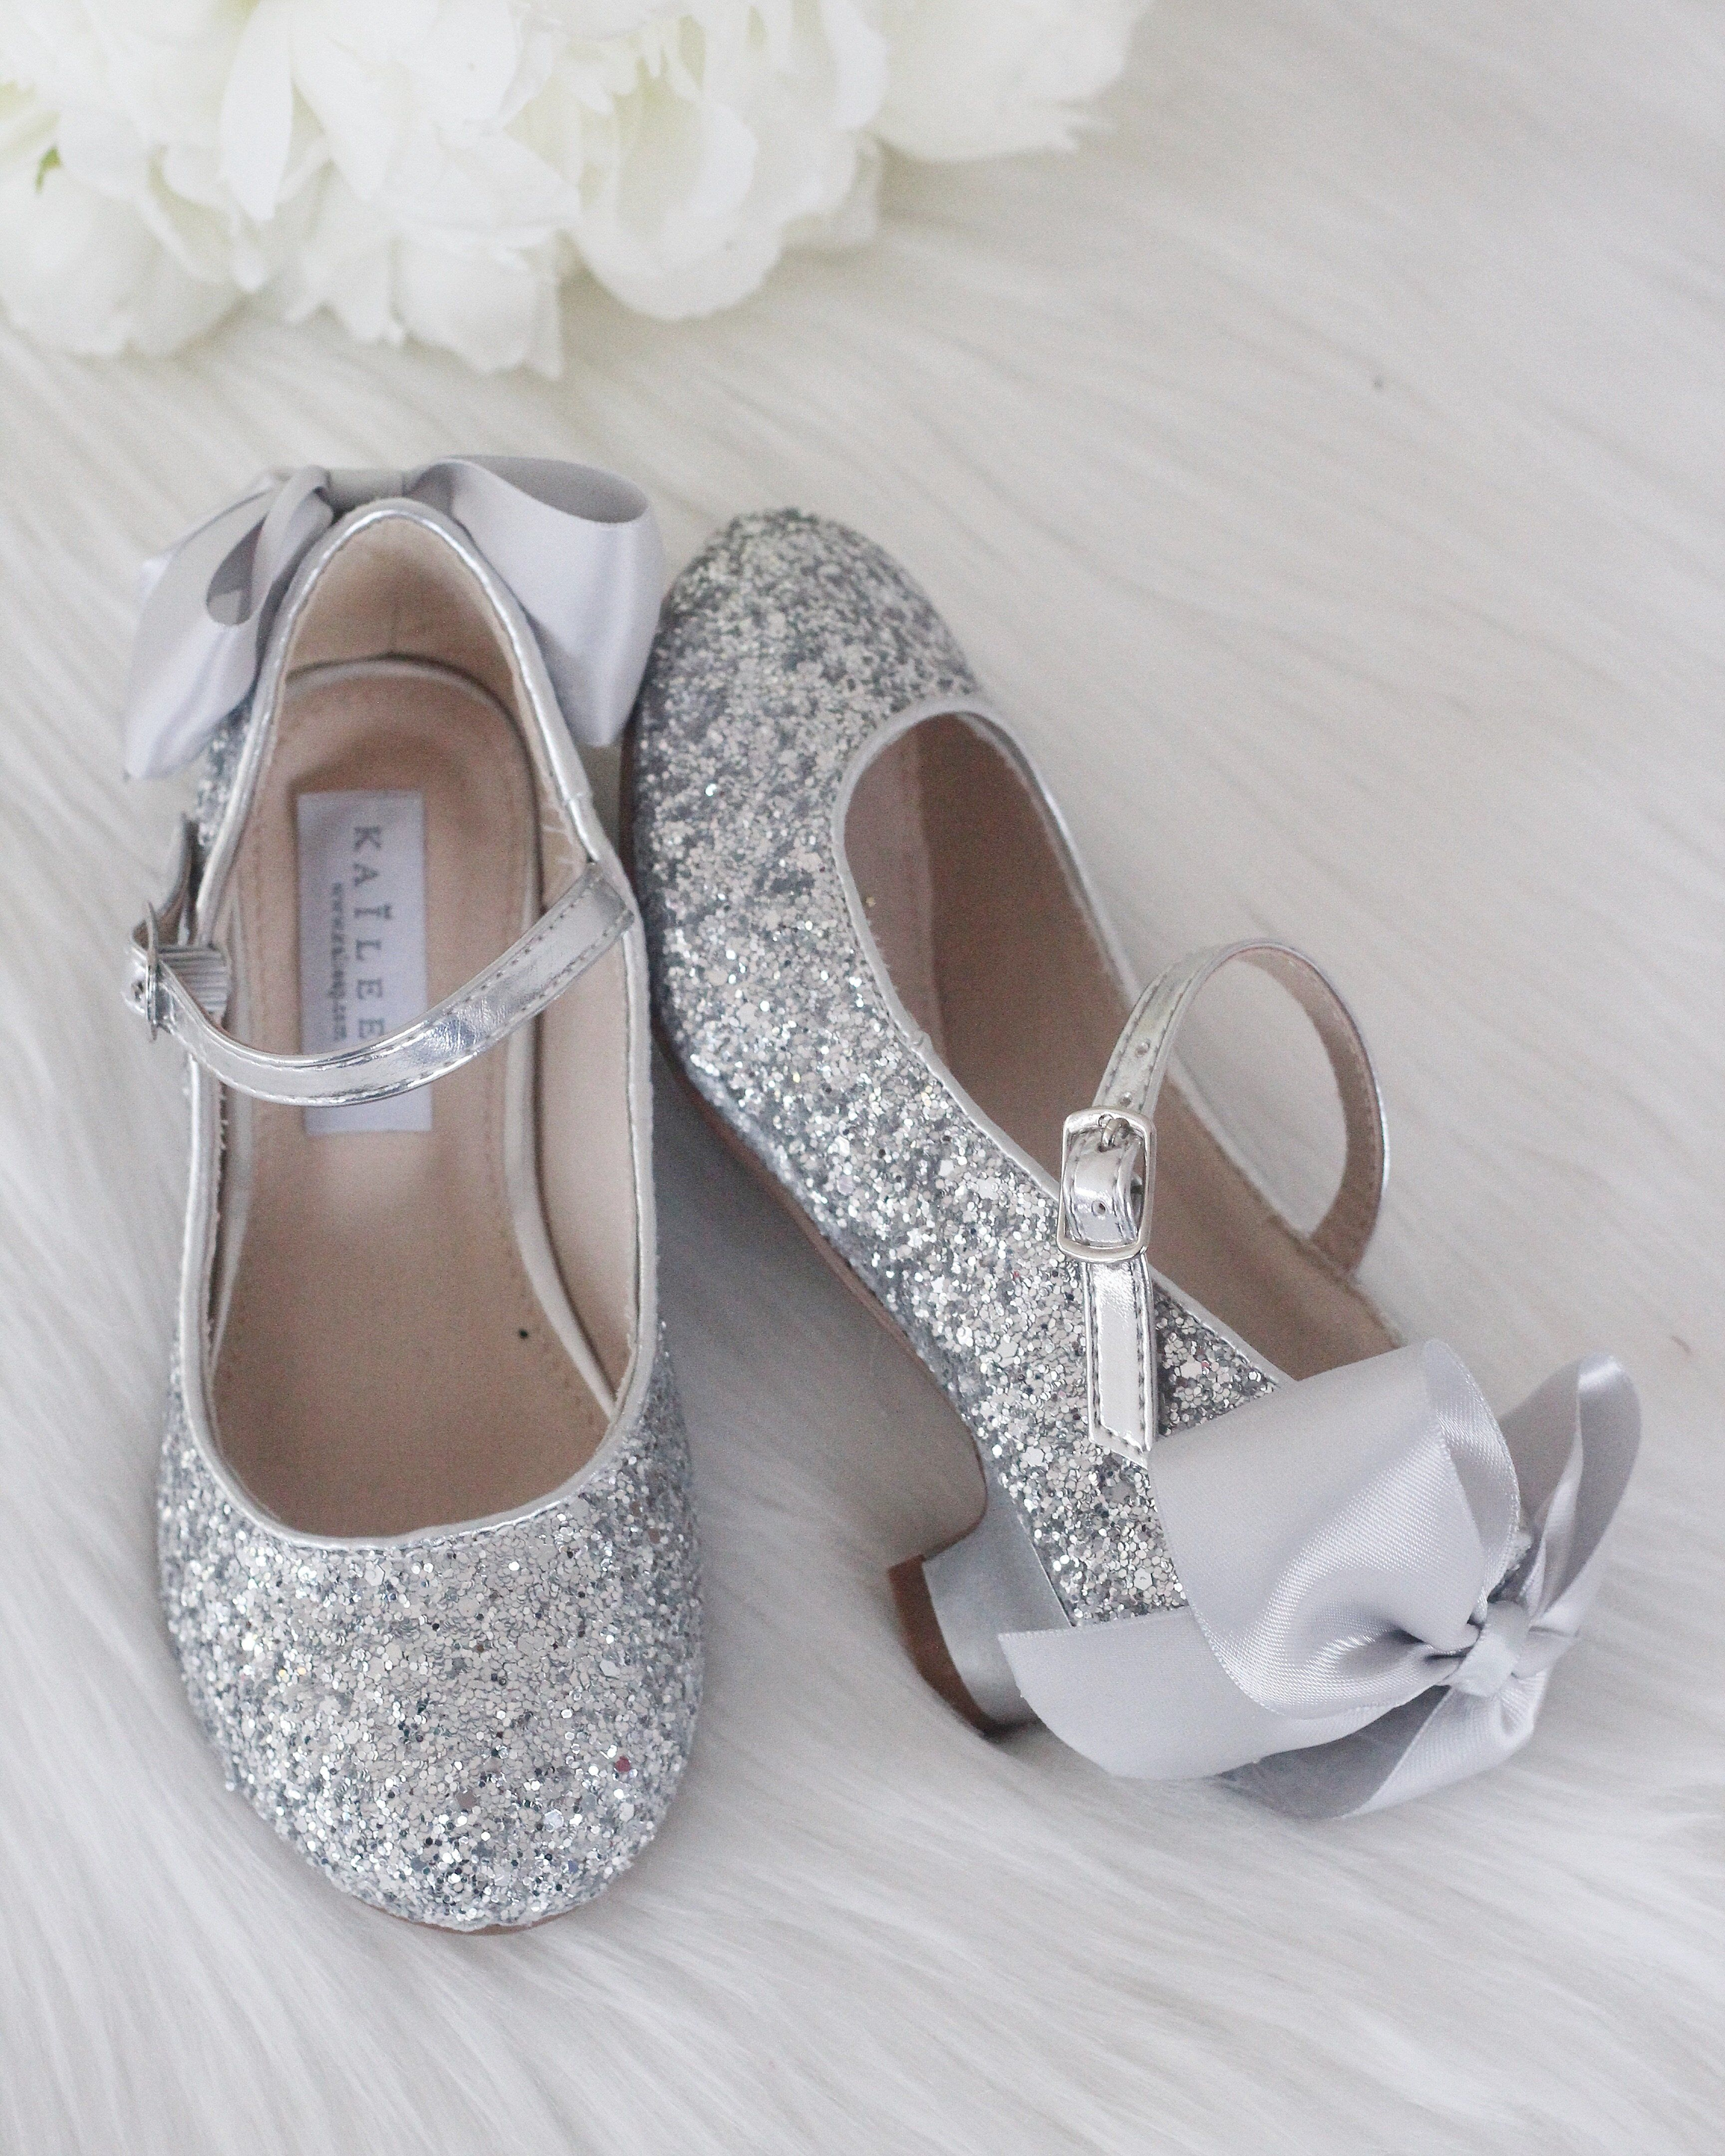 6e58acee3b81 US $32.83 |2015 new Shiny Pearls kids Wedding Party girls shoe Summer  Sandals girls Princess Shoes children's high heels free shipping #357-in  Sandals from ...